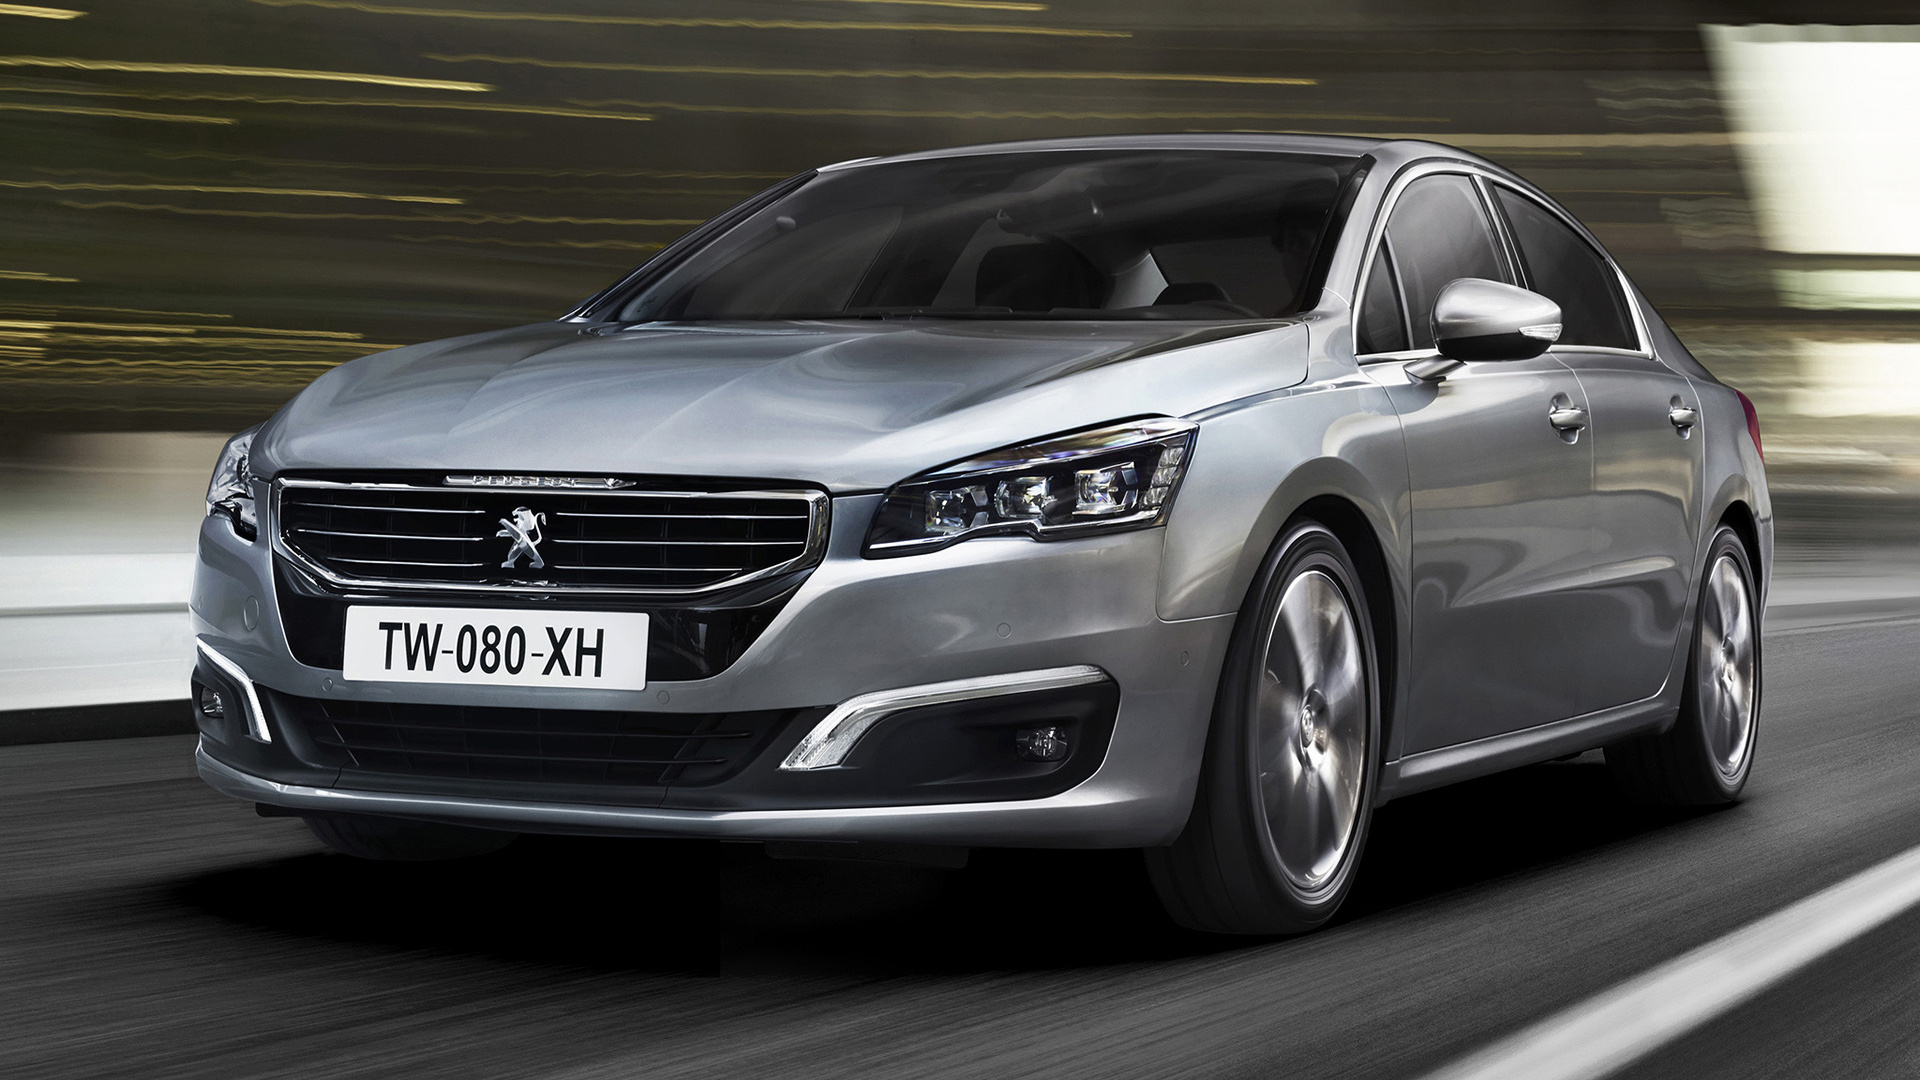 Peugeot 508 (2014) Wallpapers and HD Images - Car Pixel